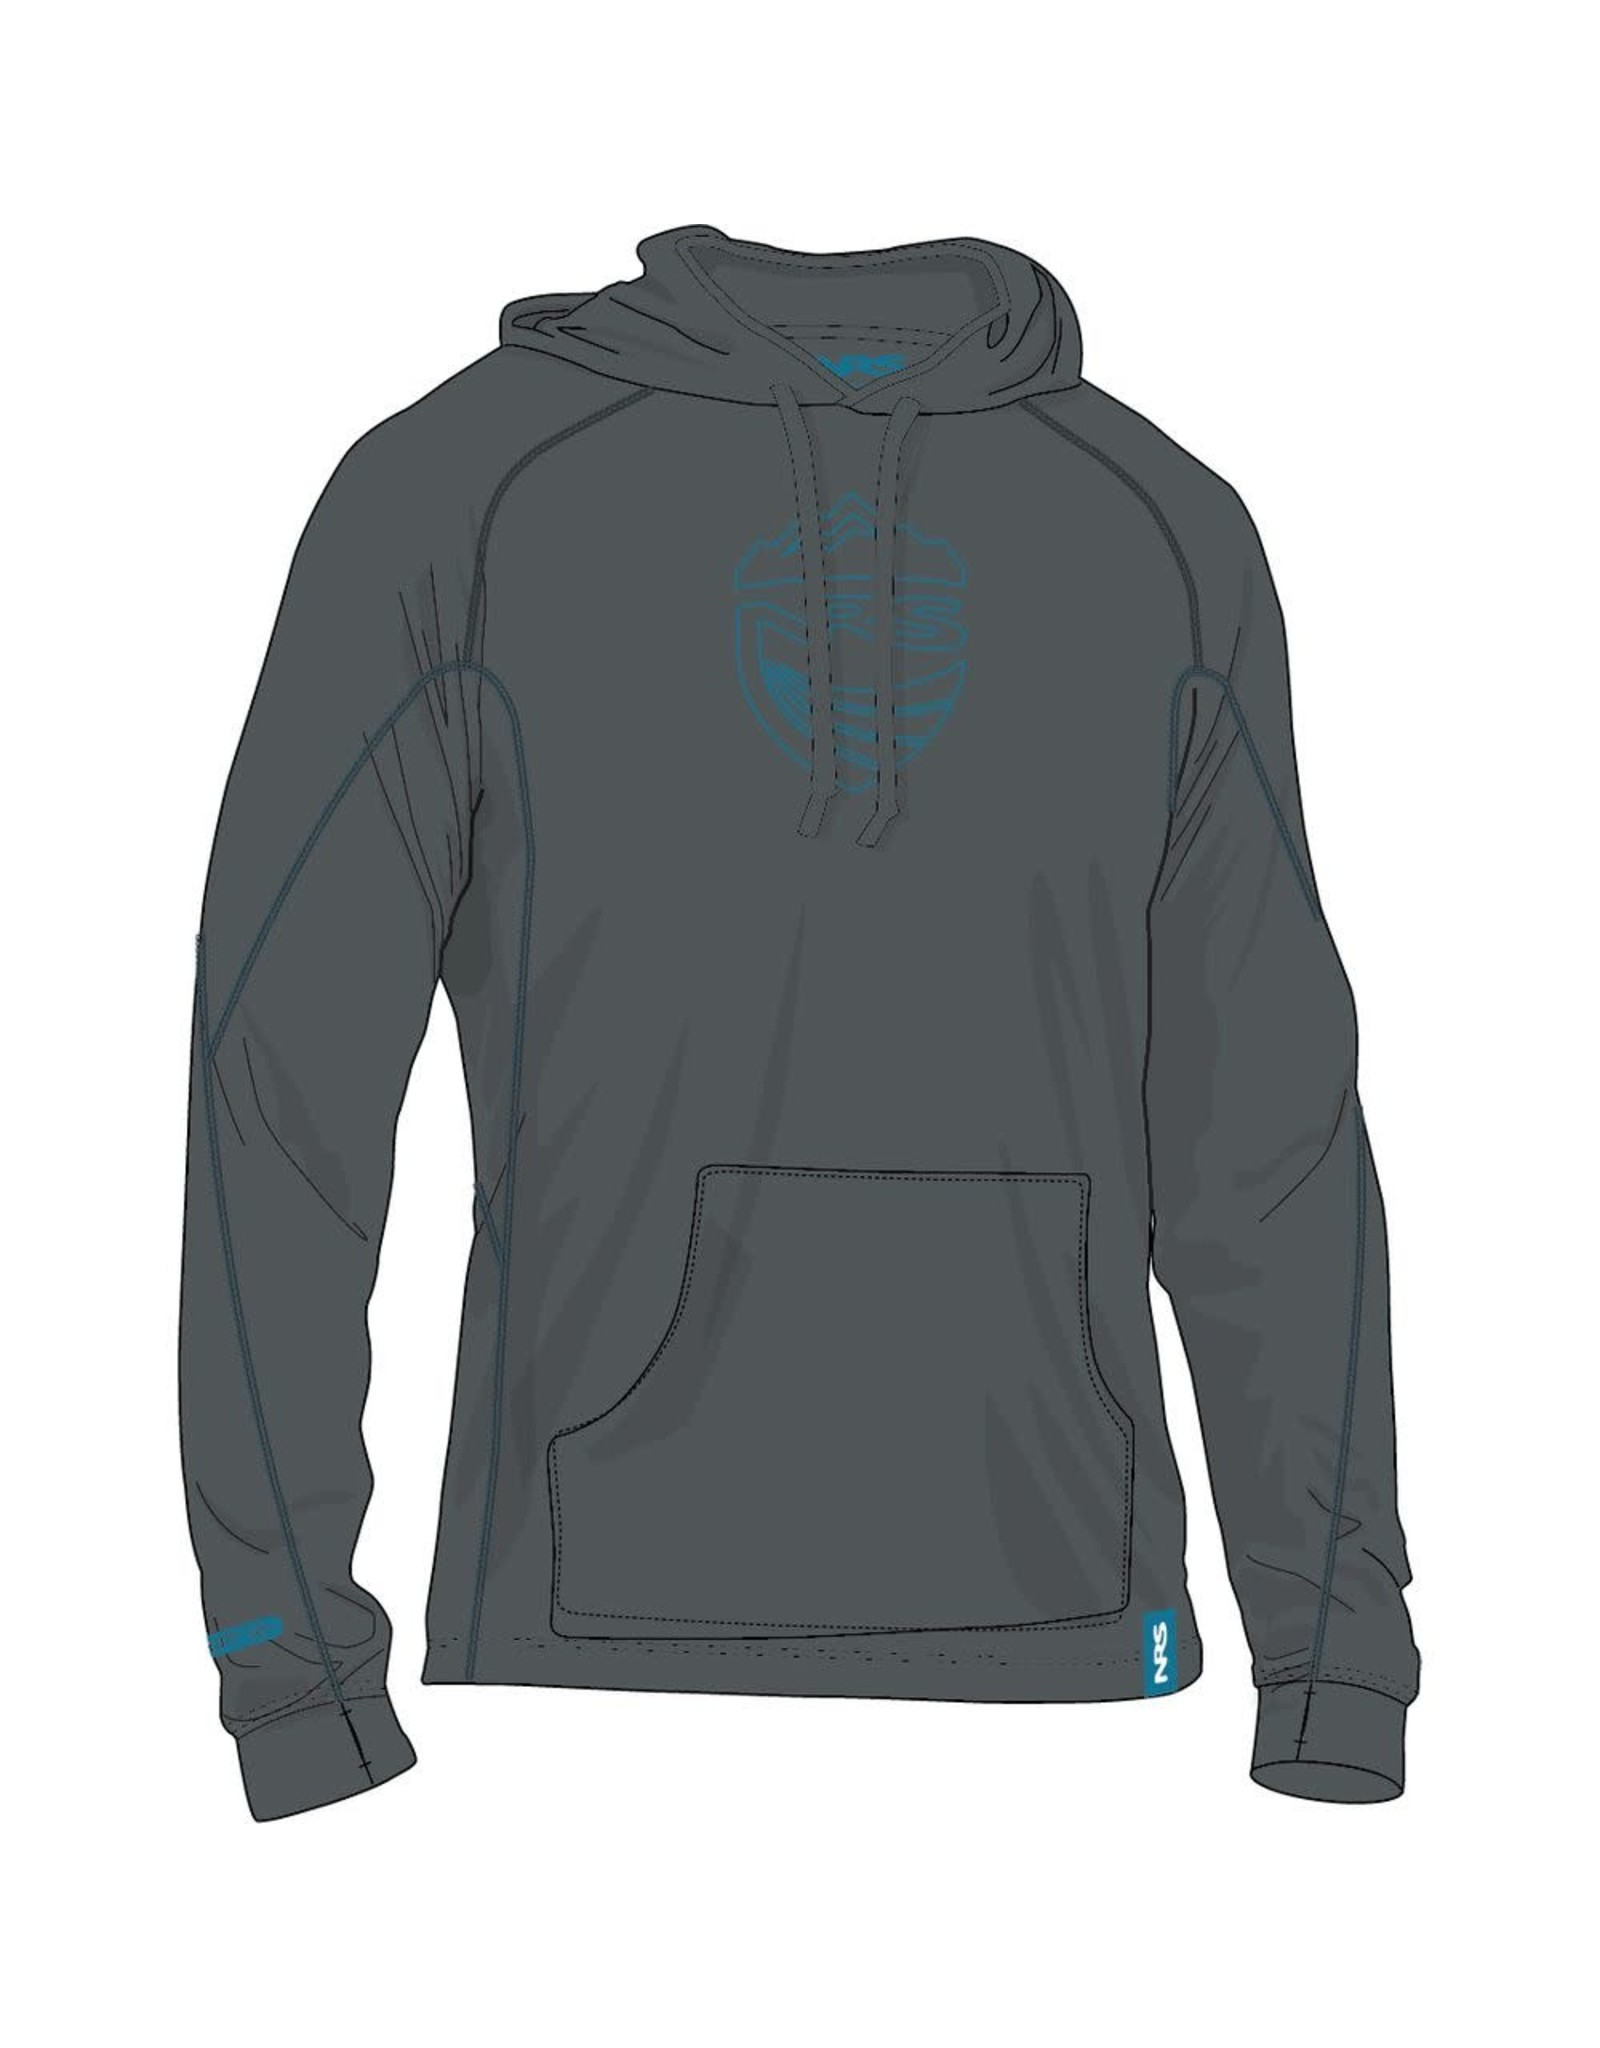 NRS NRS Chandail H2Core Expedition Weight Hoodie Homme Dark Shadow